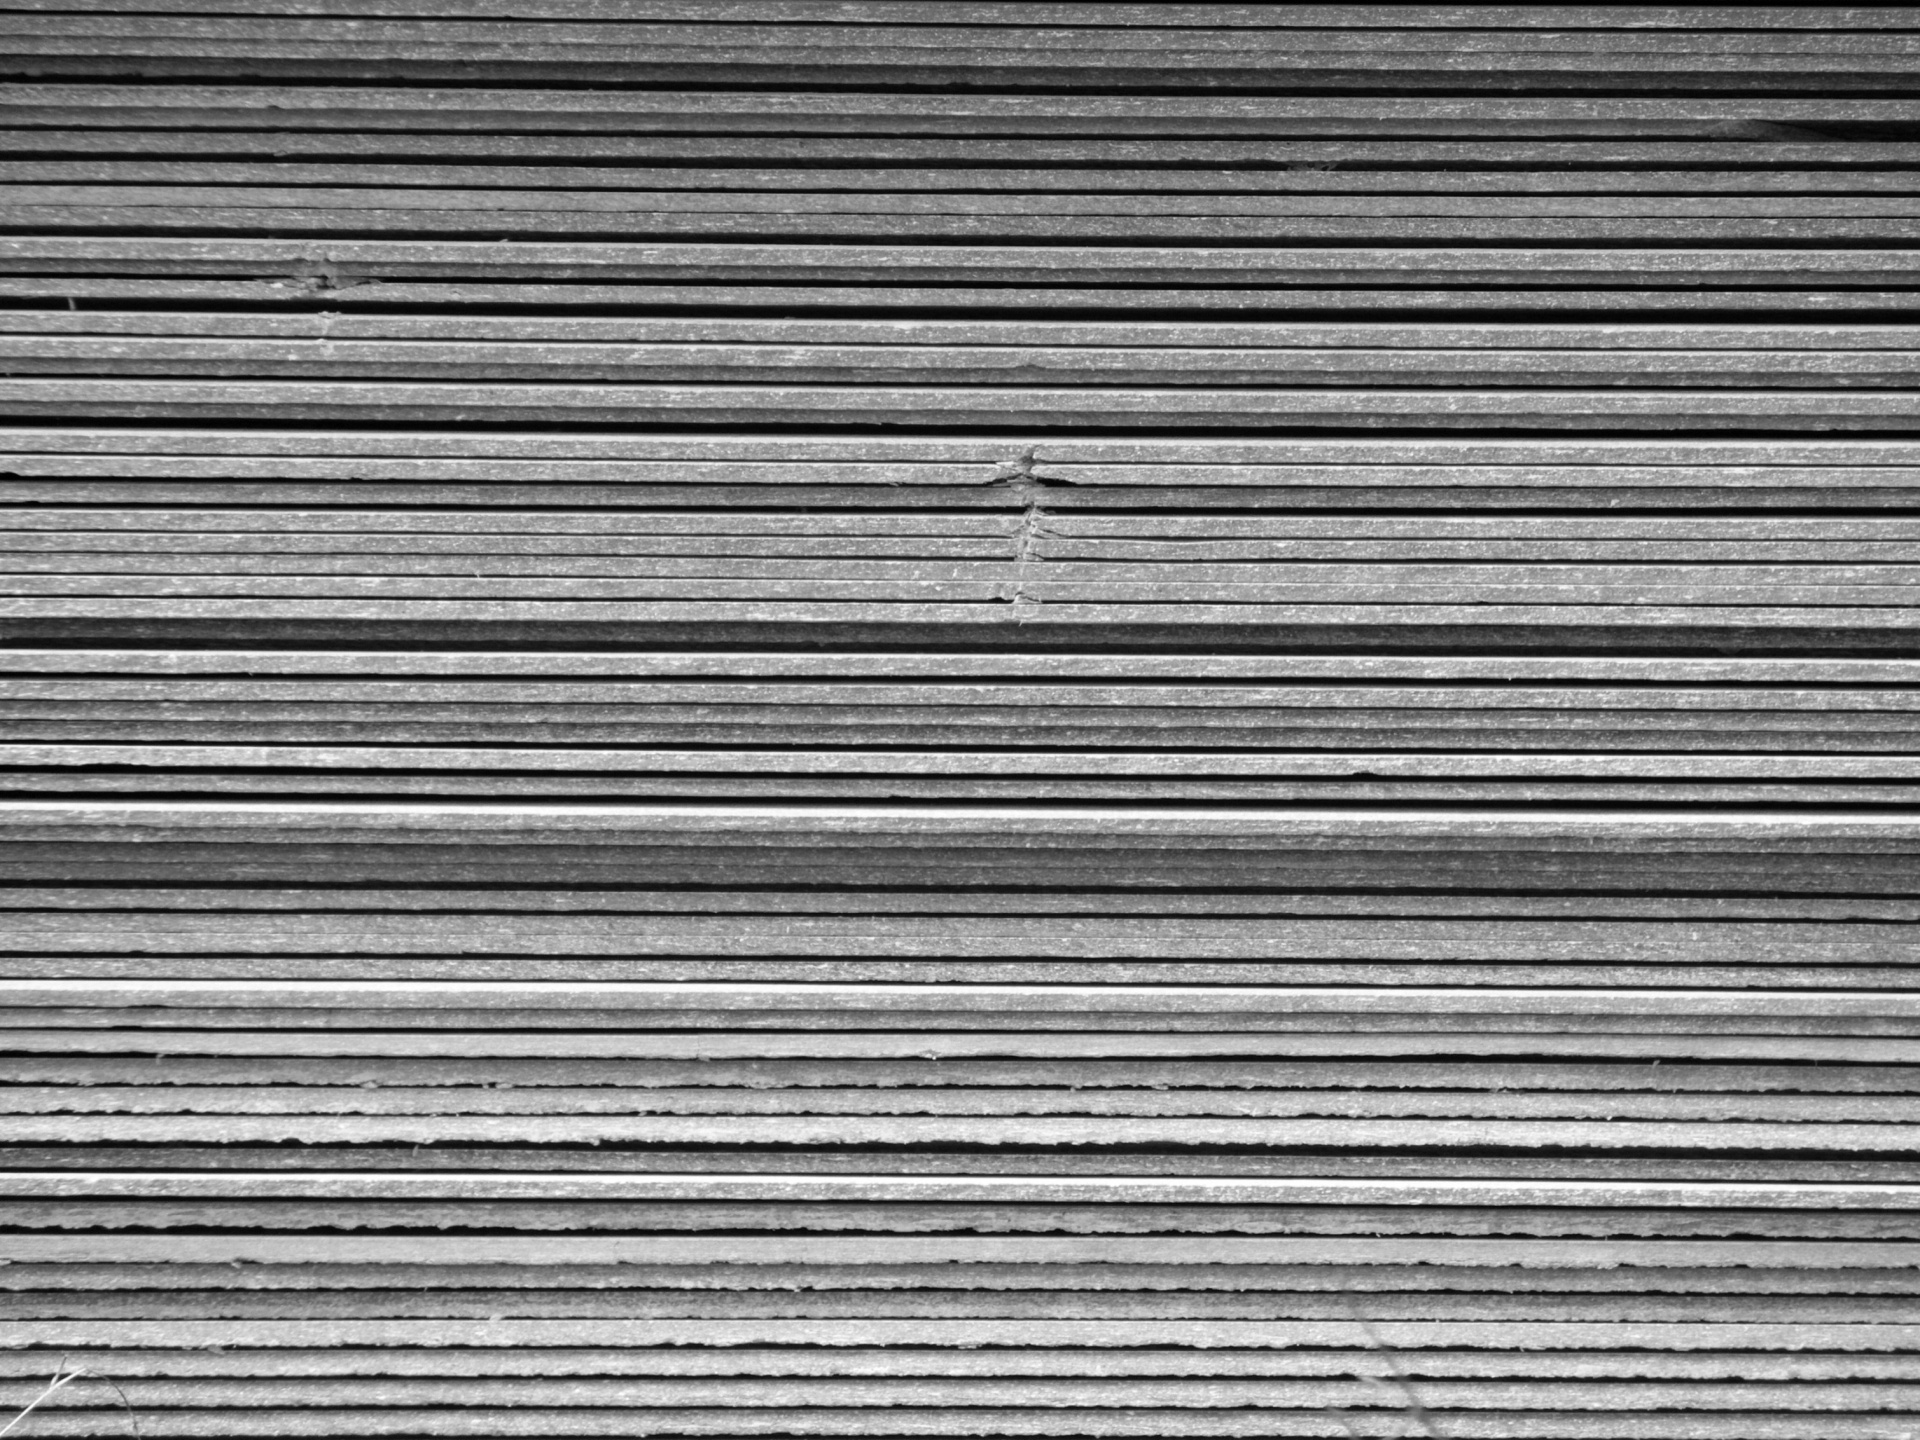 Gray Industrial Background Free Stock Photo - Public Domain Pictures